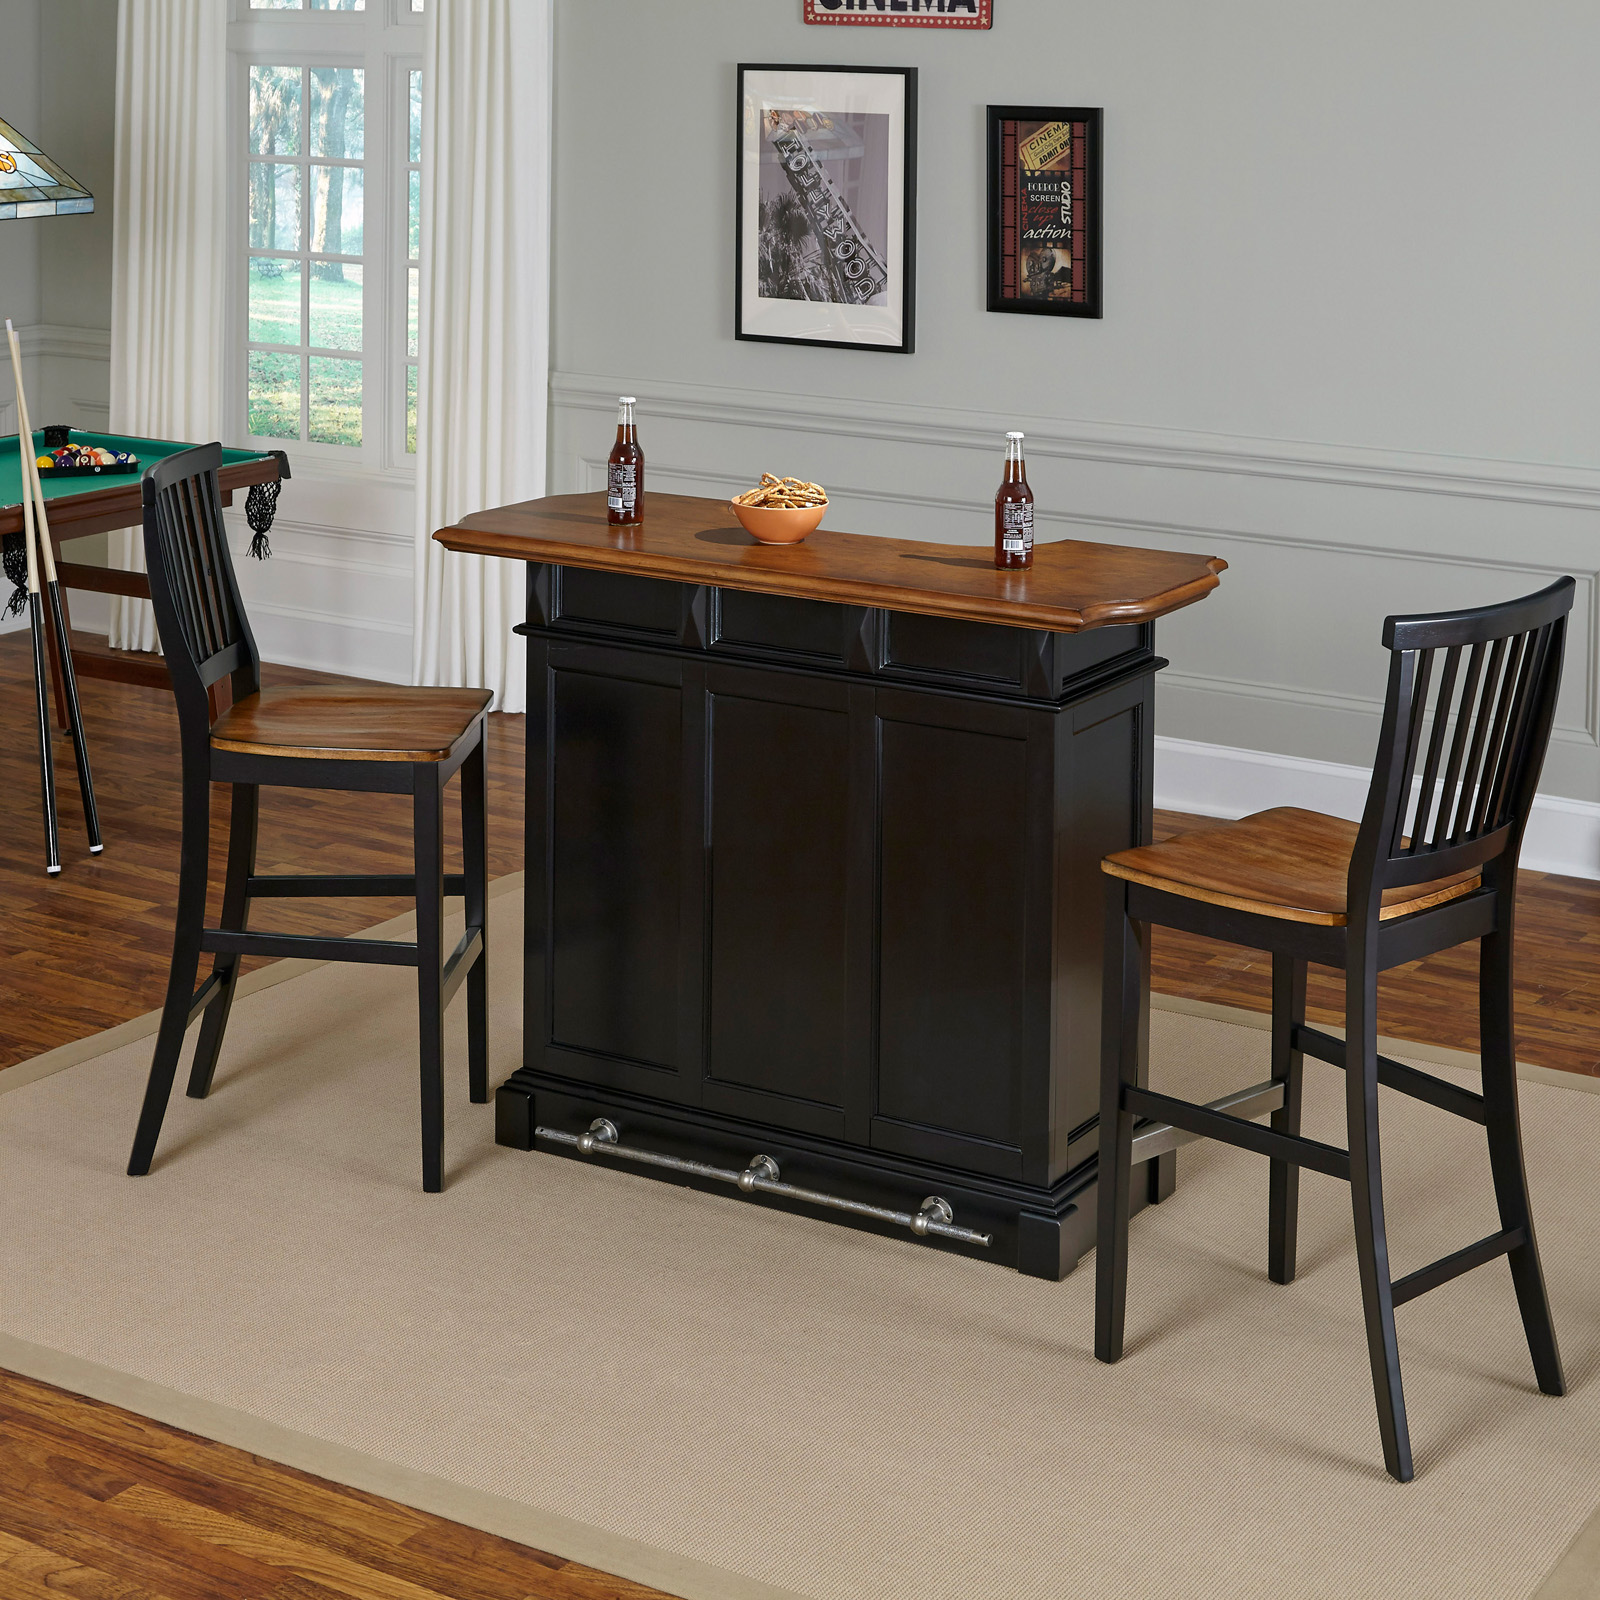 Bon Home Styles Americana Home Bar With 2 Stools